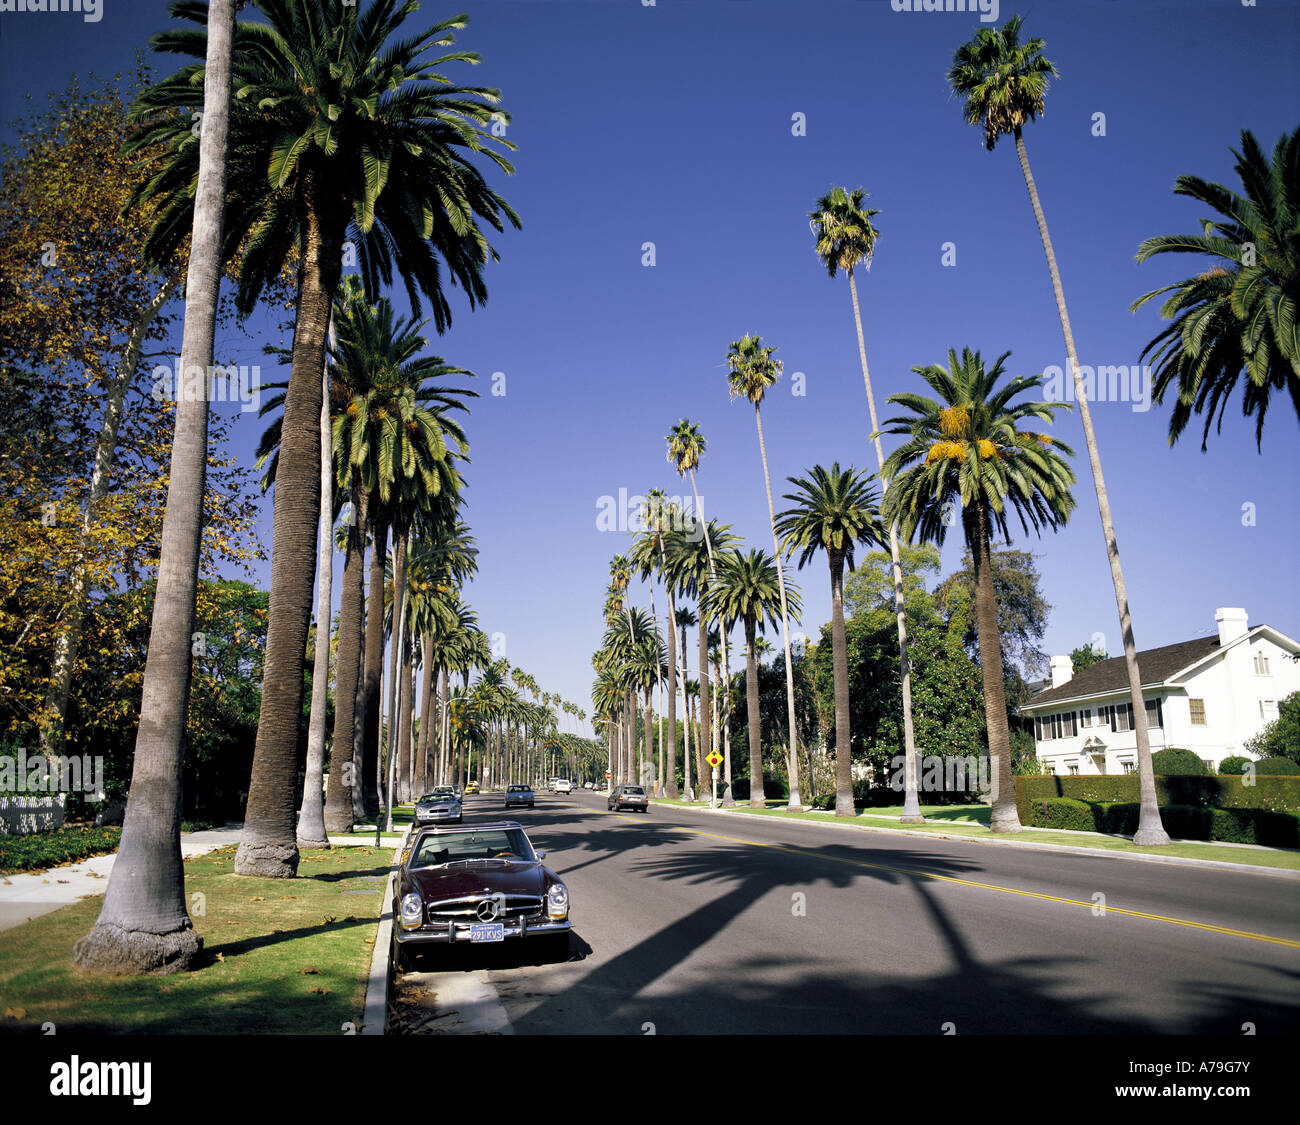 Luxury House In Los Angeles California: Hollywood Hills And Houses Stock Photos & Hollywood Hills